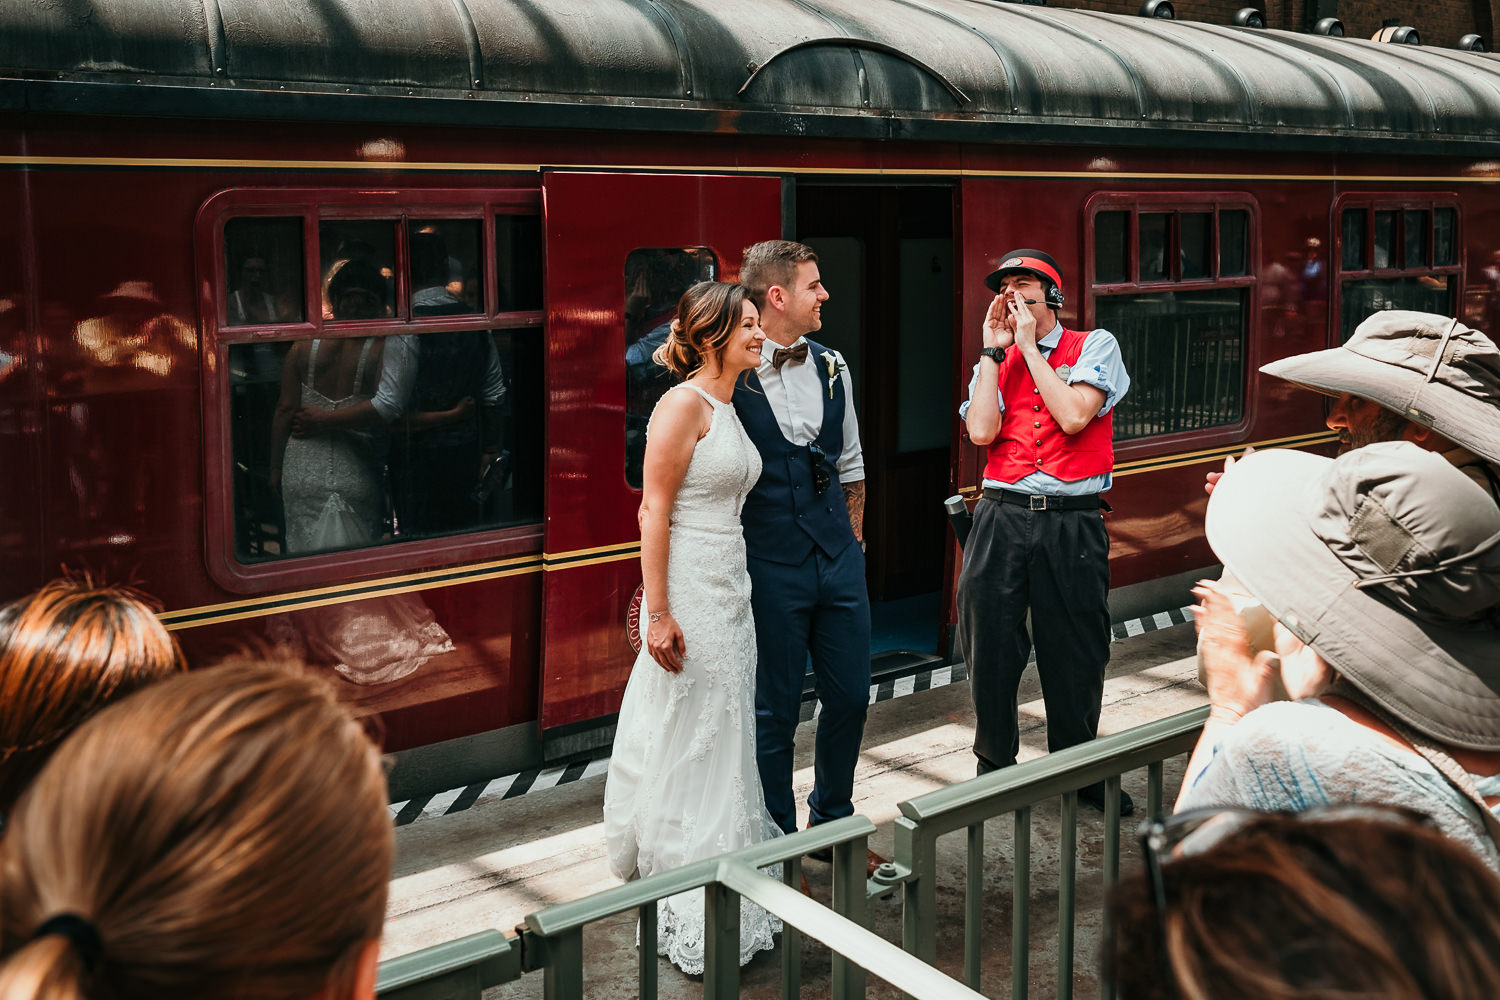 hogwarts express conductor announcing the newlyweds to crowd